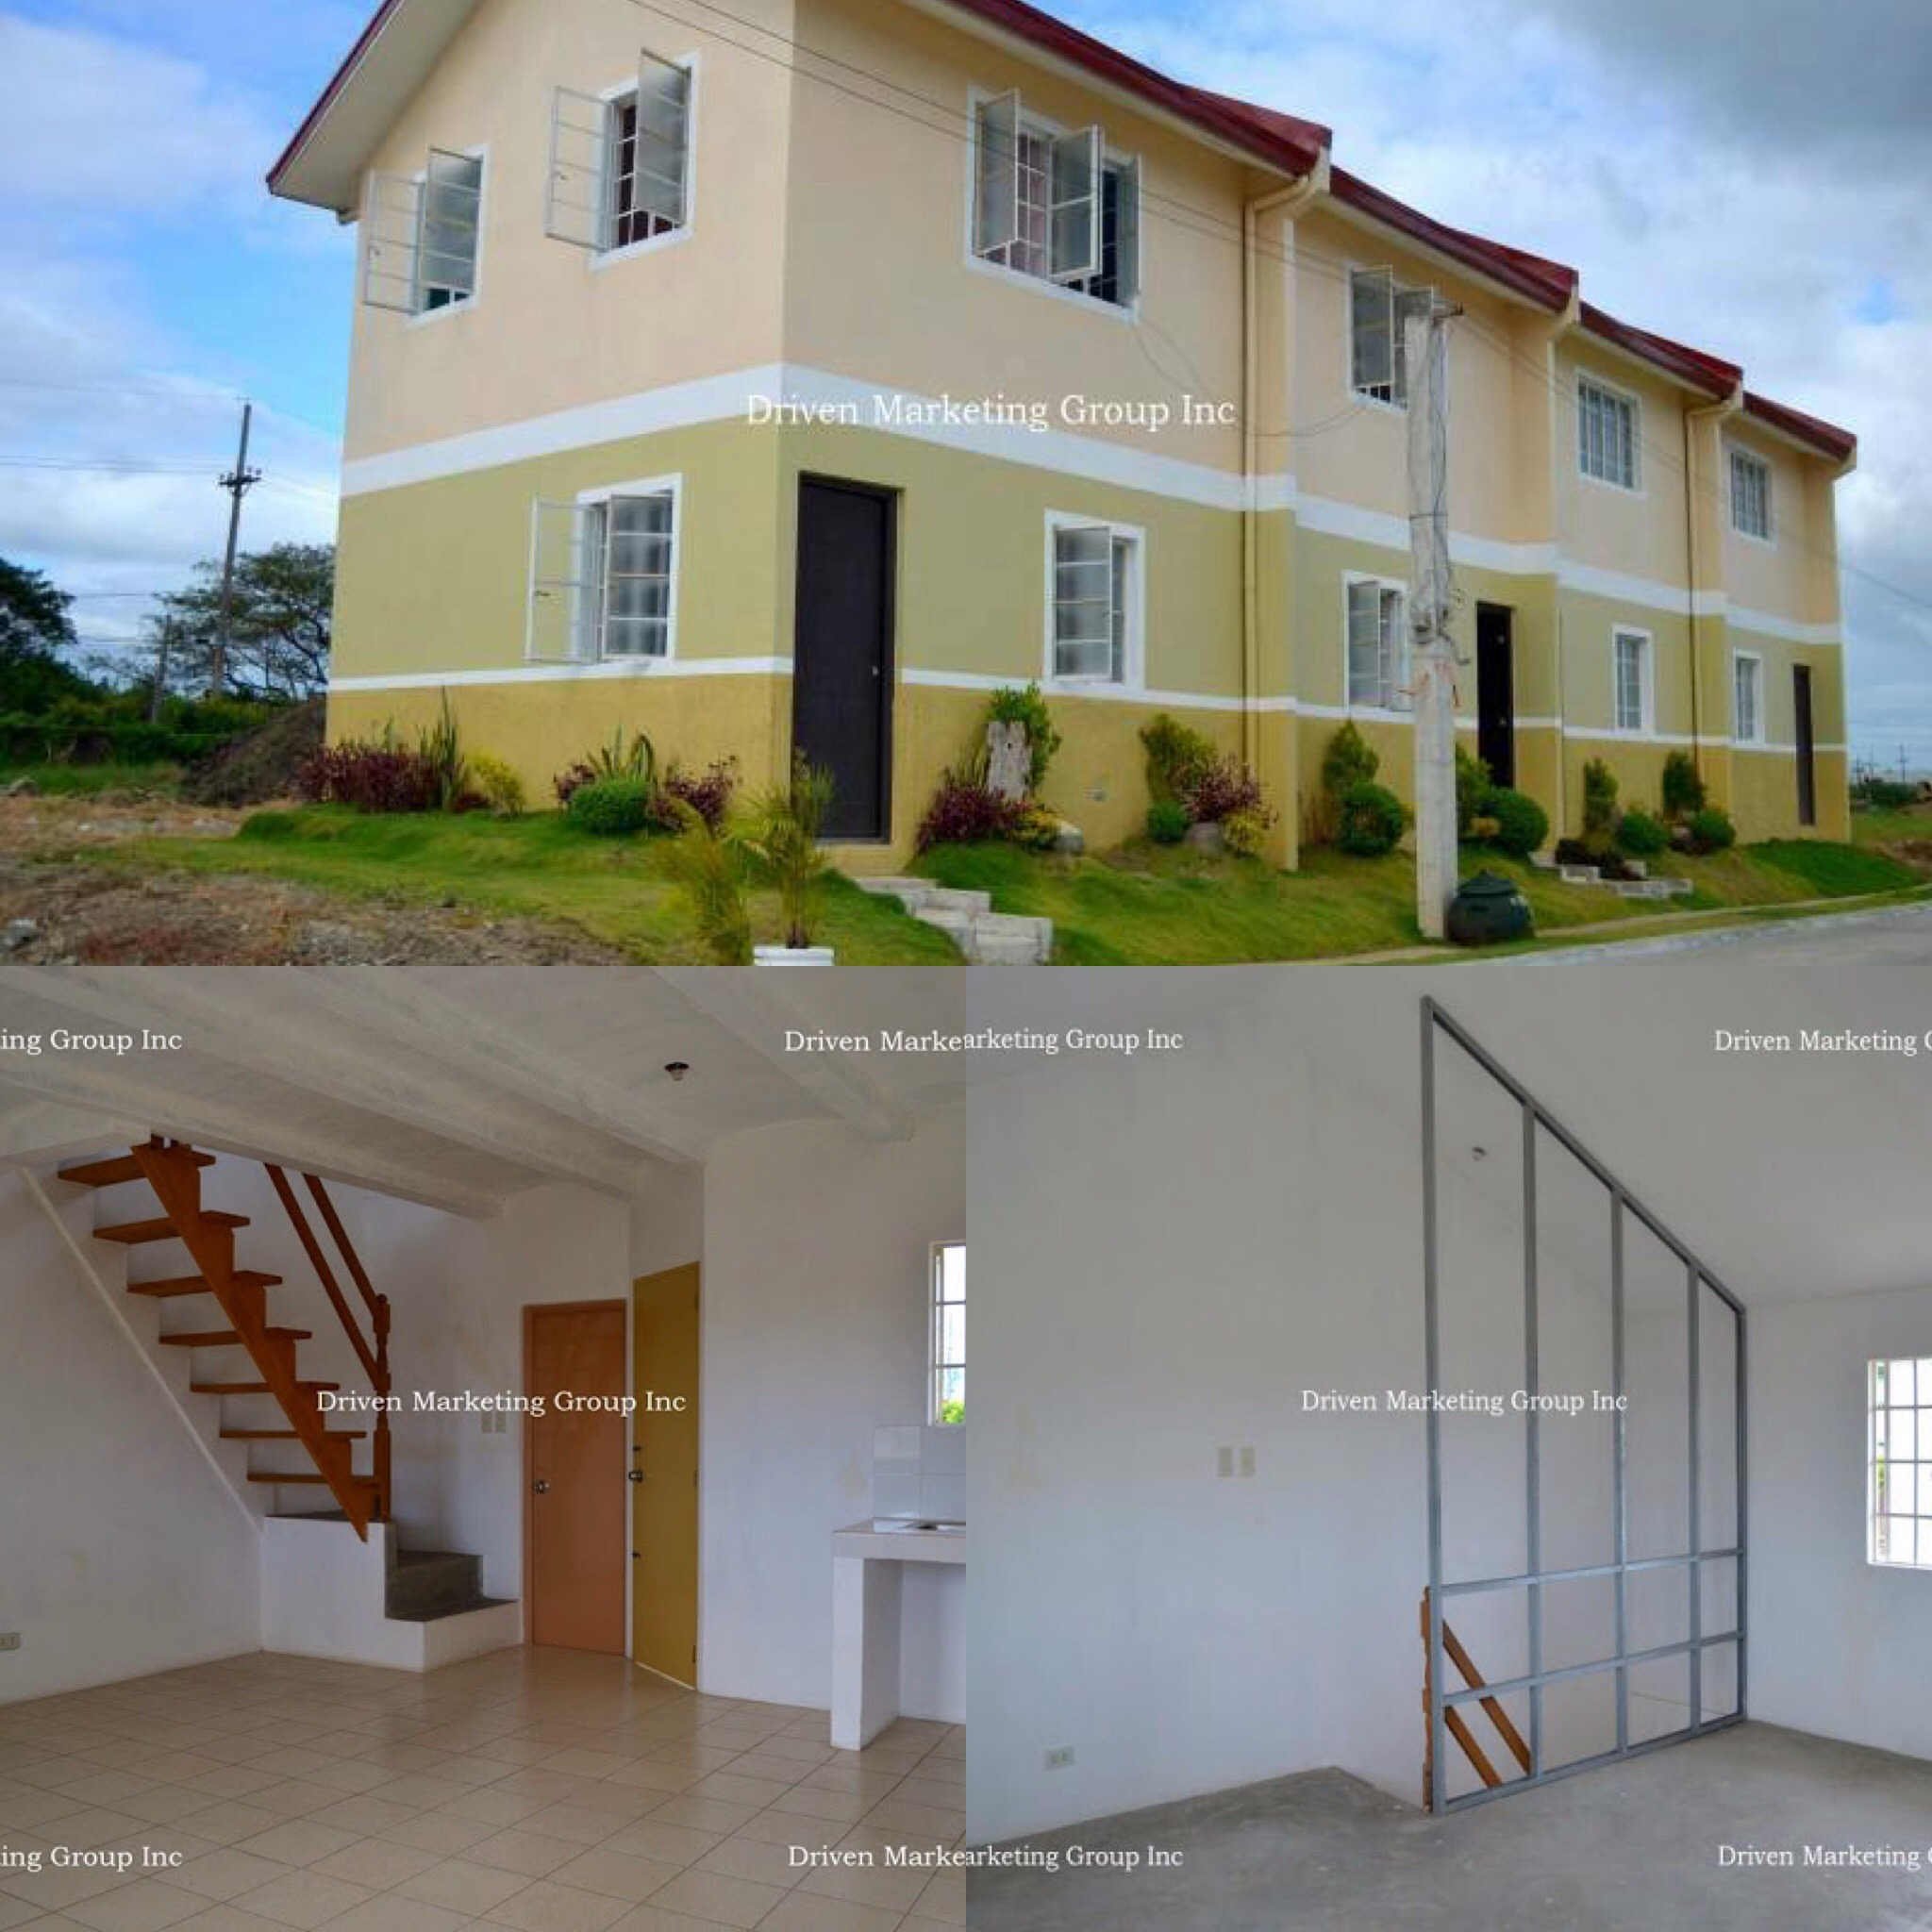 rent to own house berkeley laguna 09235564517 rico navarro